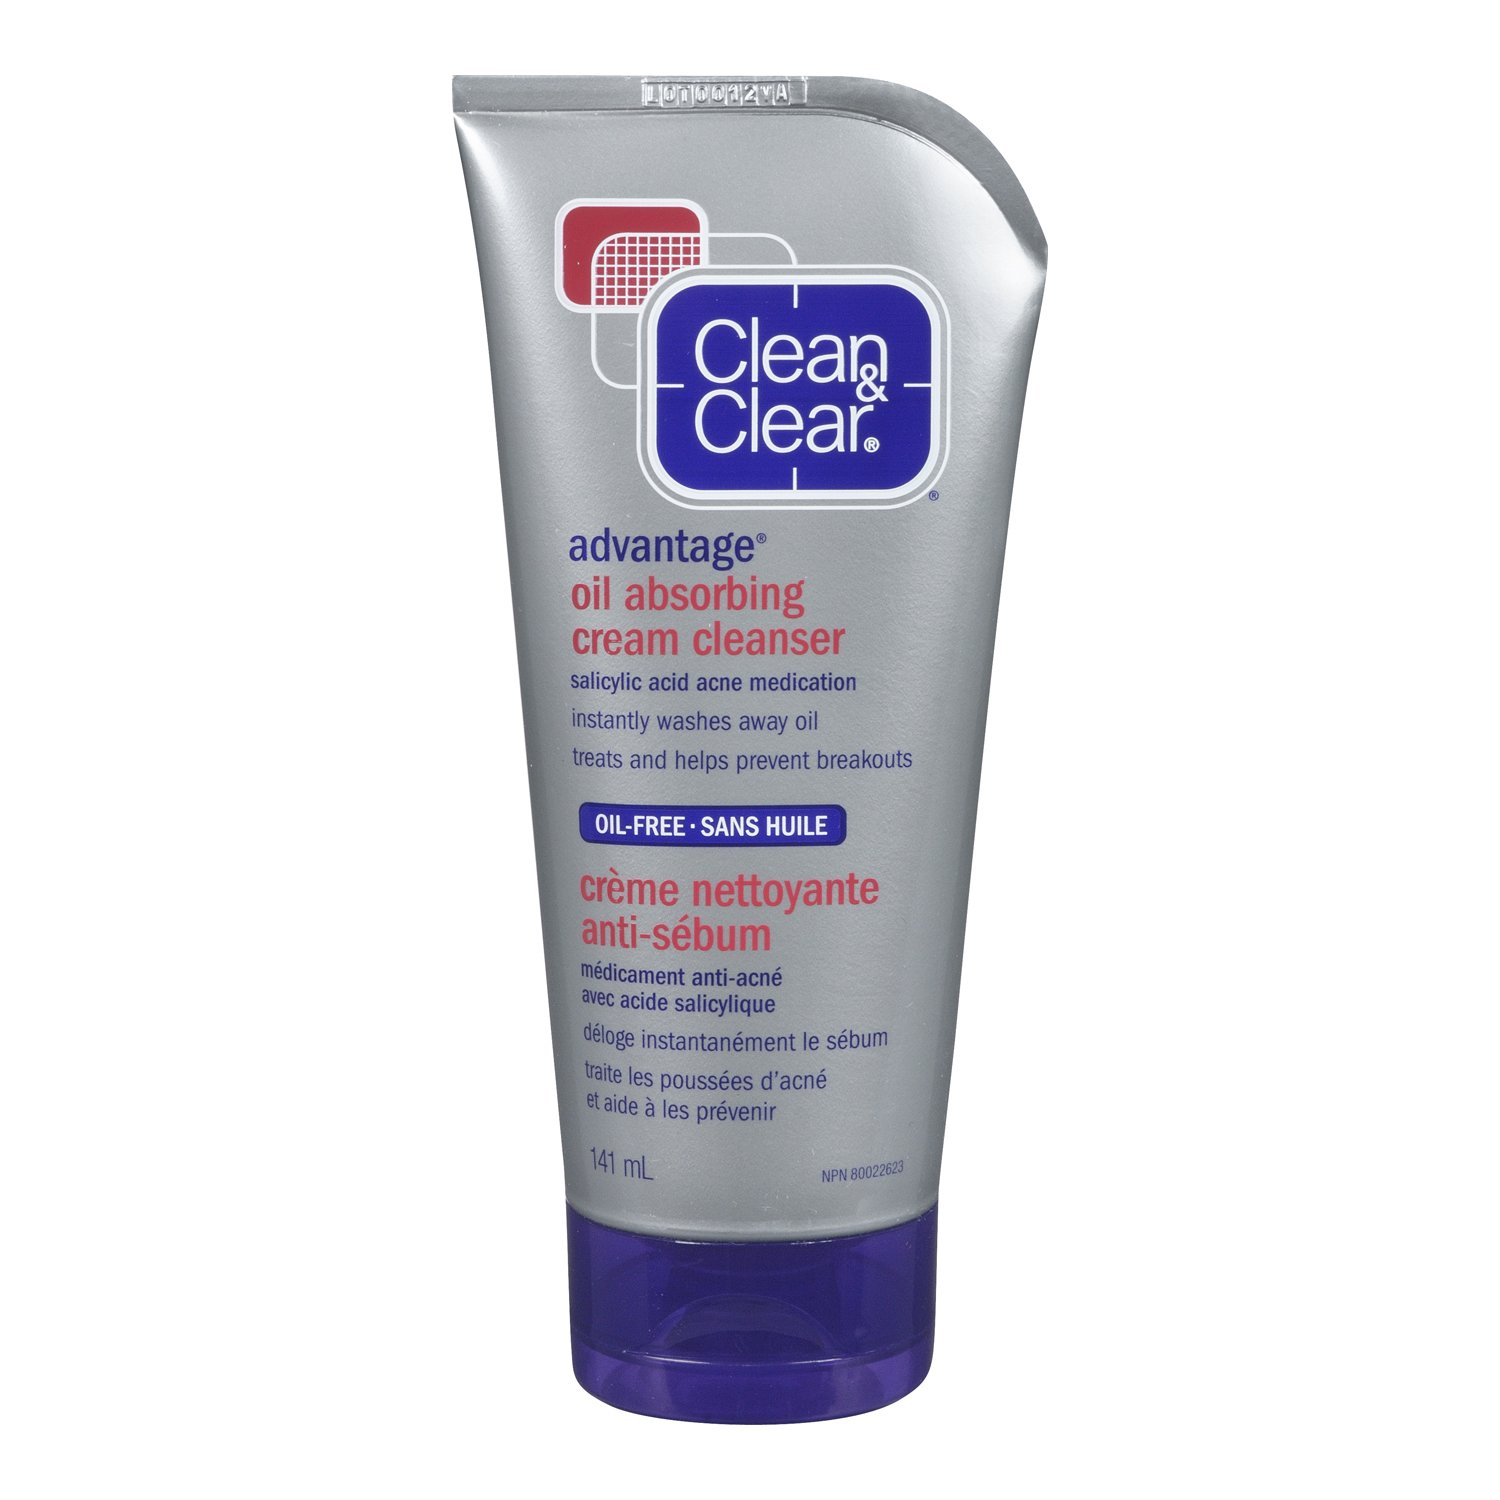 Clean   Clear Advantage Oil Absorbing Cream Cleanser, 141ml  Amazon.ca   Beauty bc5be09b616